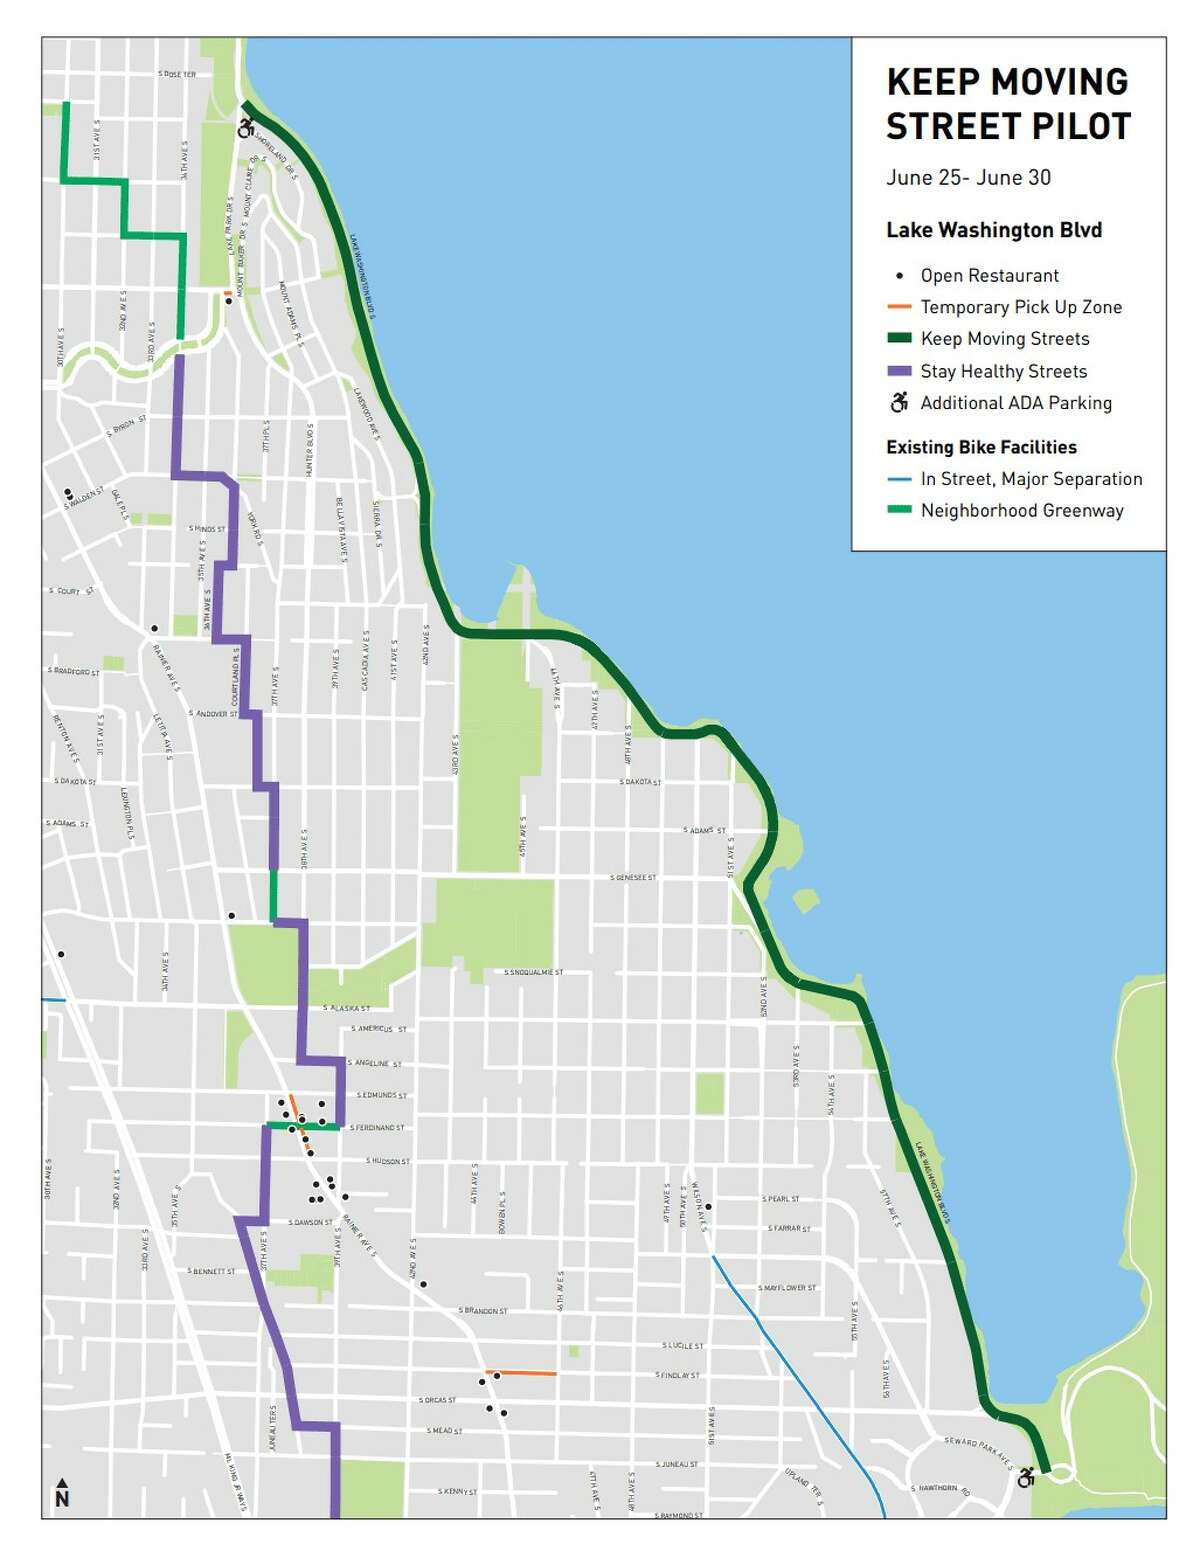 Over 600 people shared concern, joy, and ideas for traveling along Lake Washington Blvd during the June 5-day pilot opening Lake Washington Blvd to people walking, rolling, and biking.